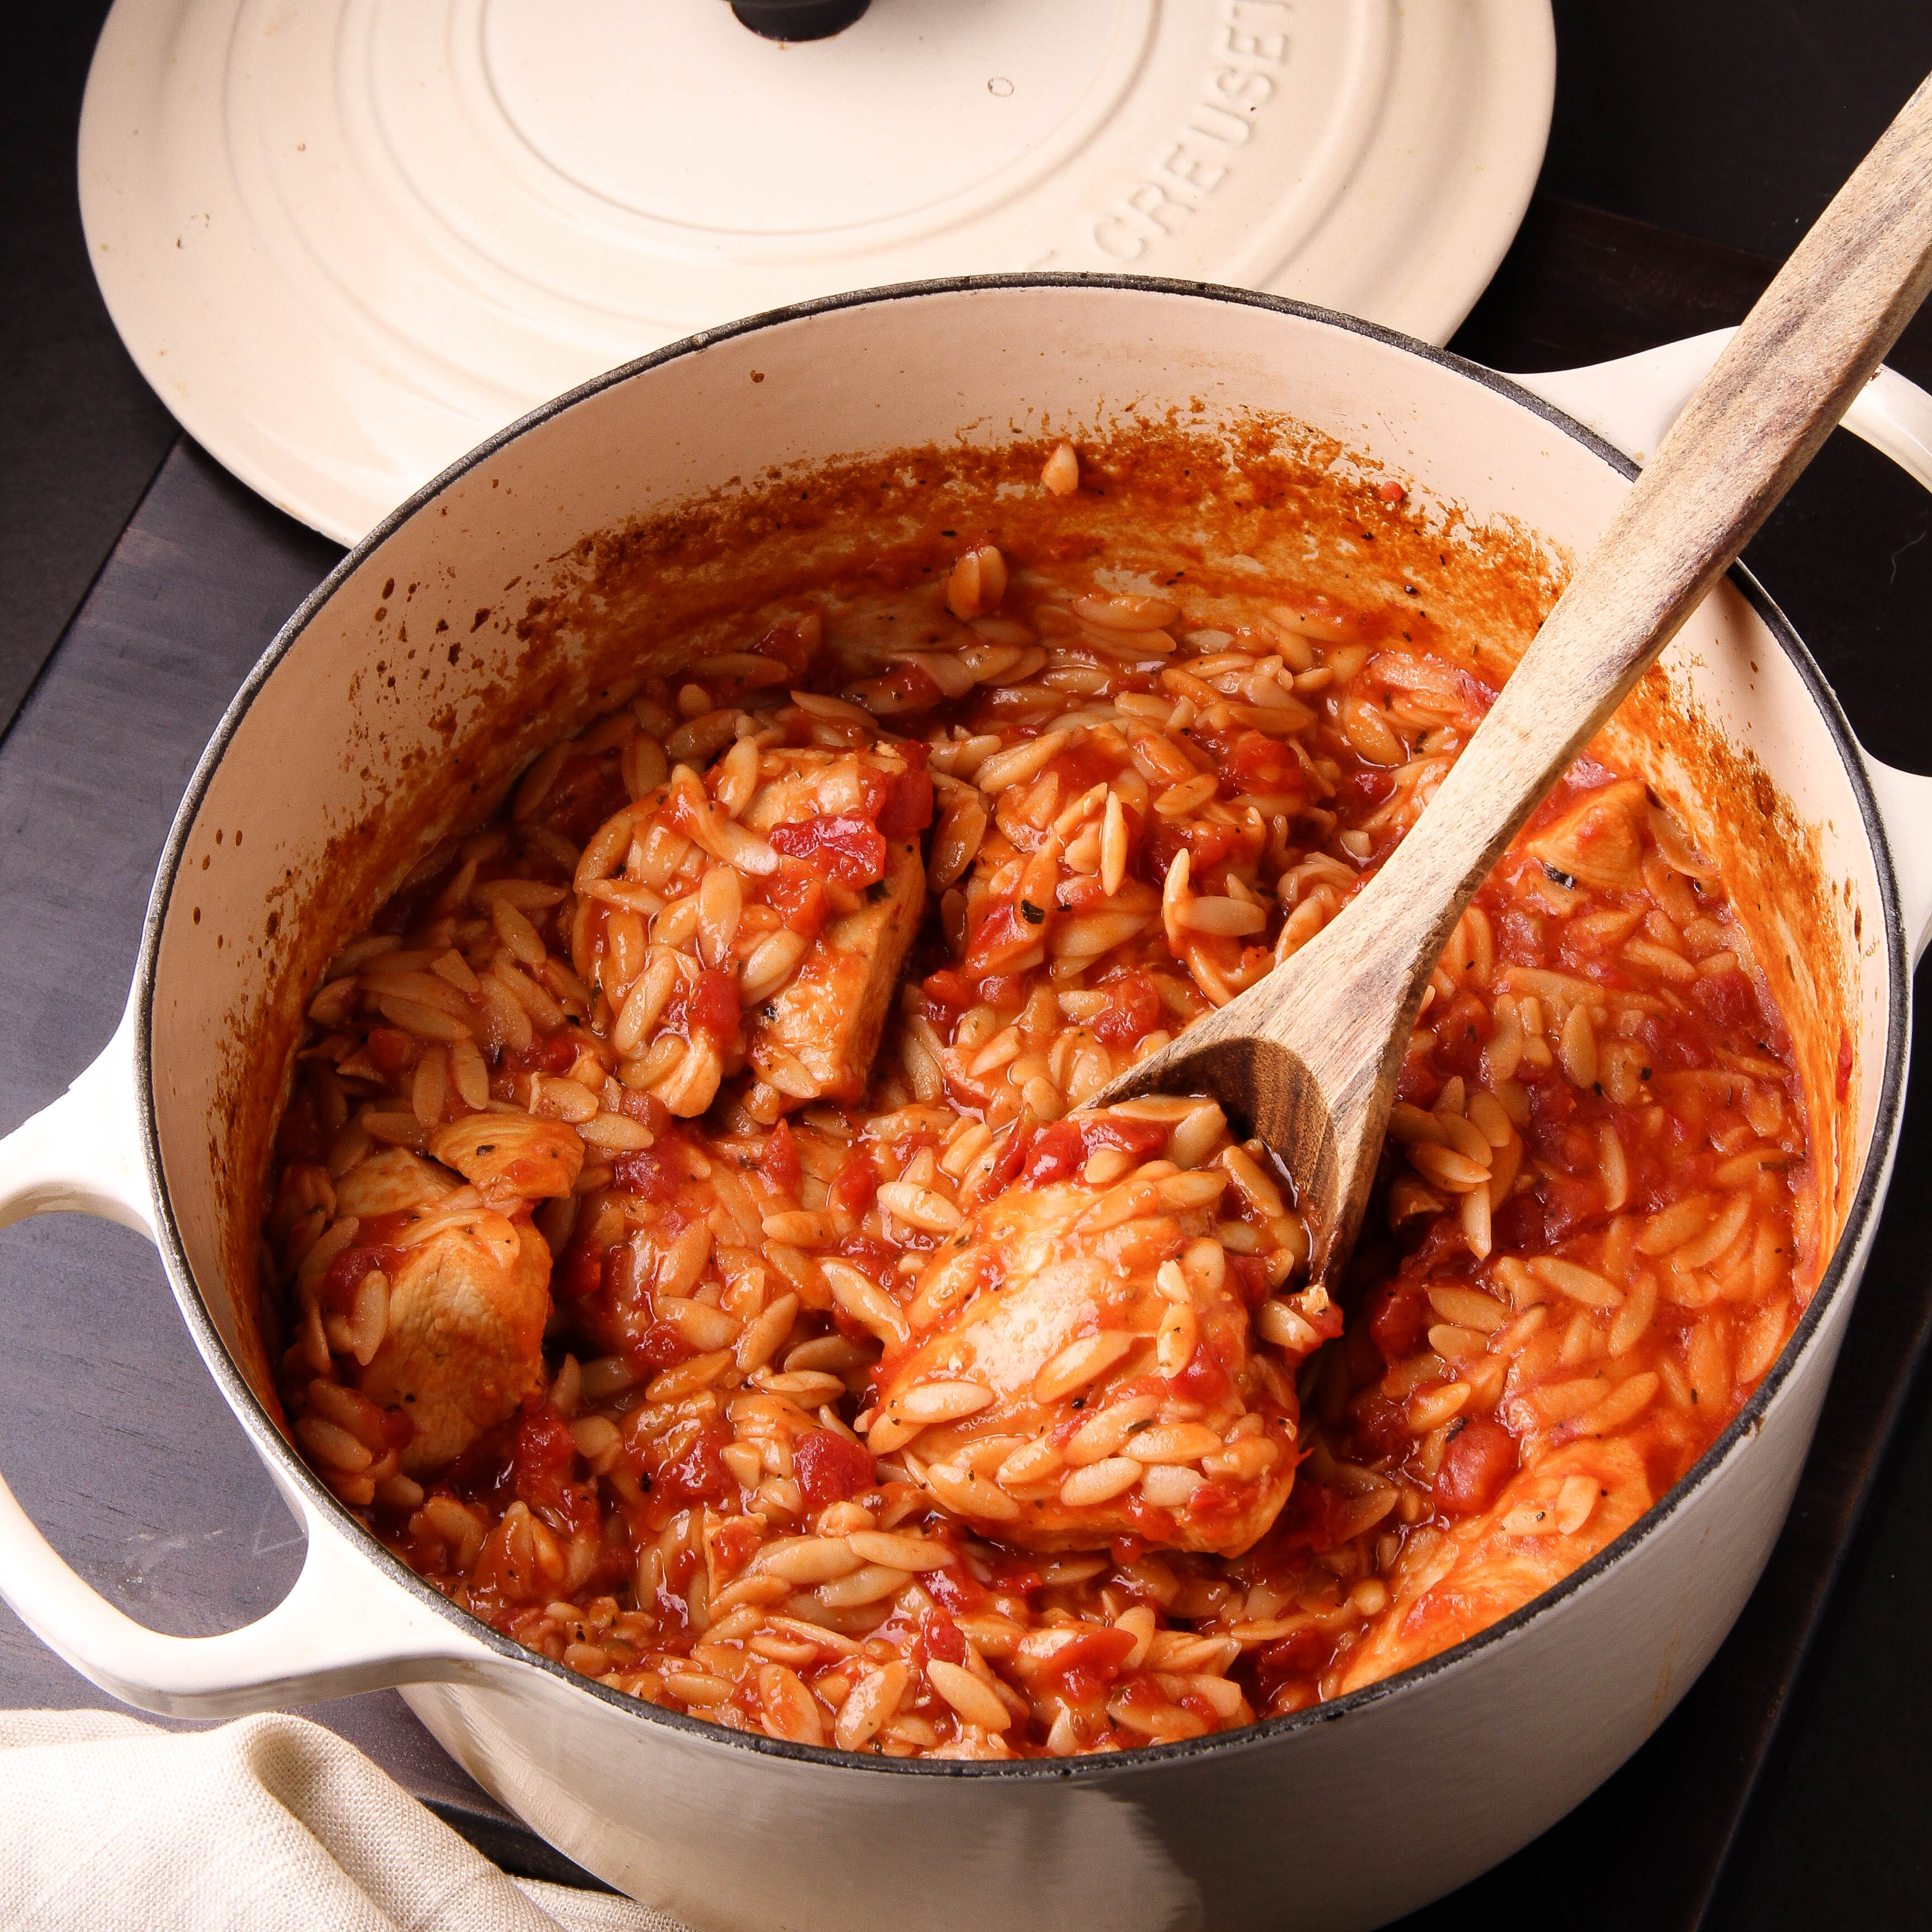 Baked Chicken With Orzo The Right Recipe